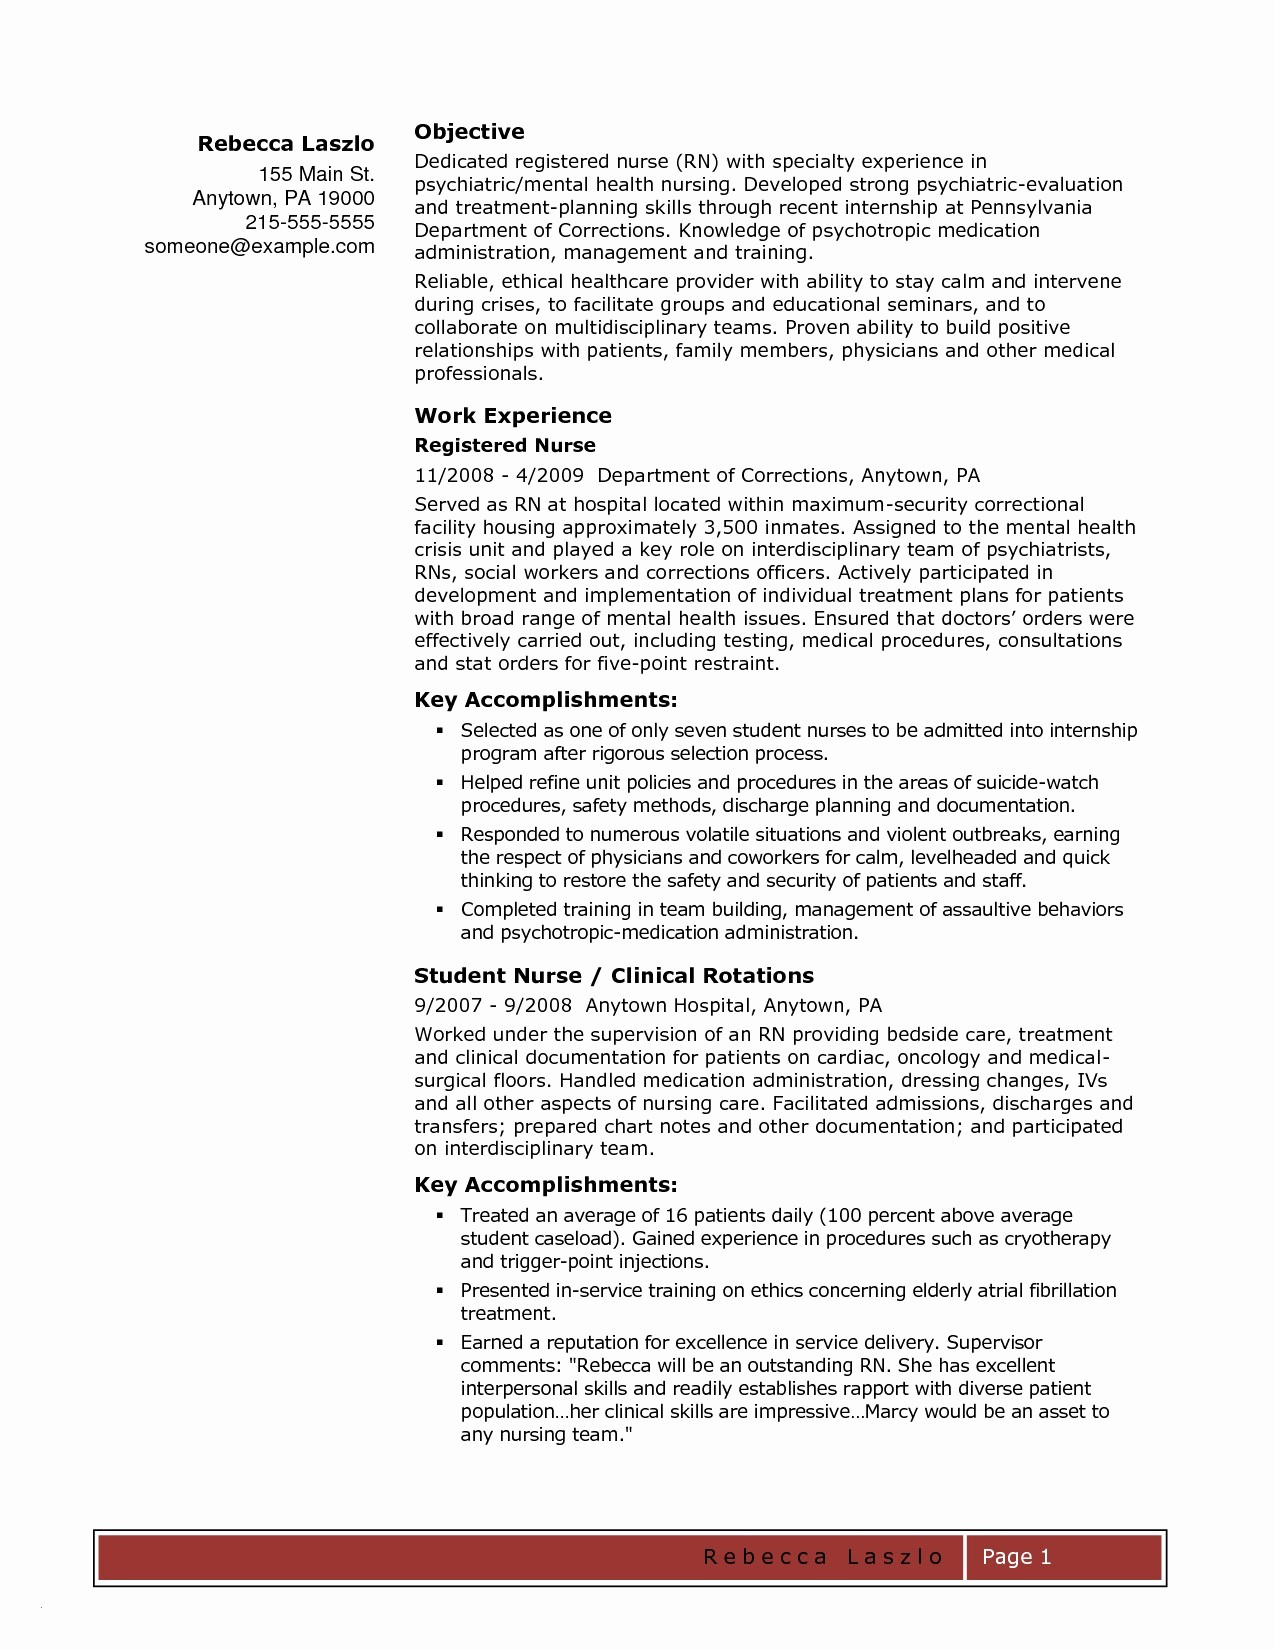 Dialysis Technician Resume Objective - Dialysis Technician Resume Valid Dialysis Technician Resume Charge